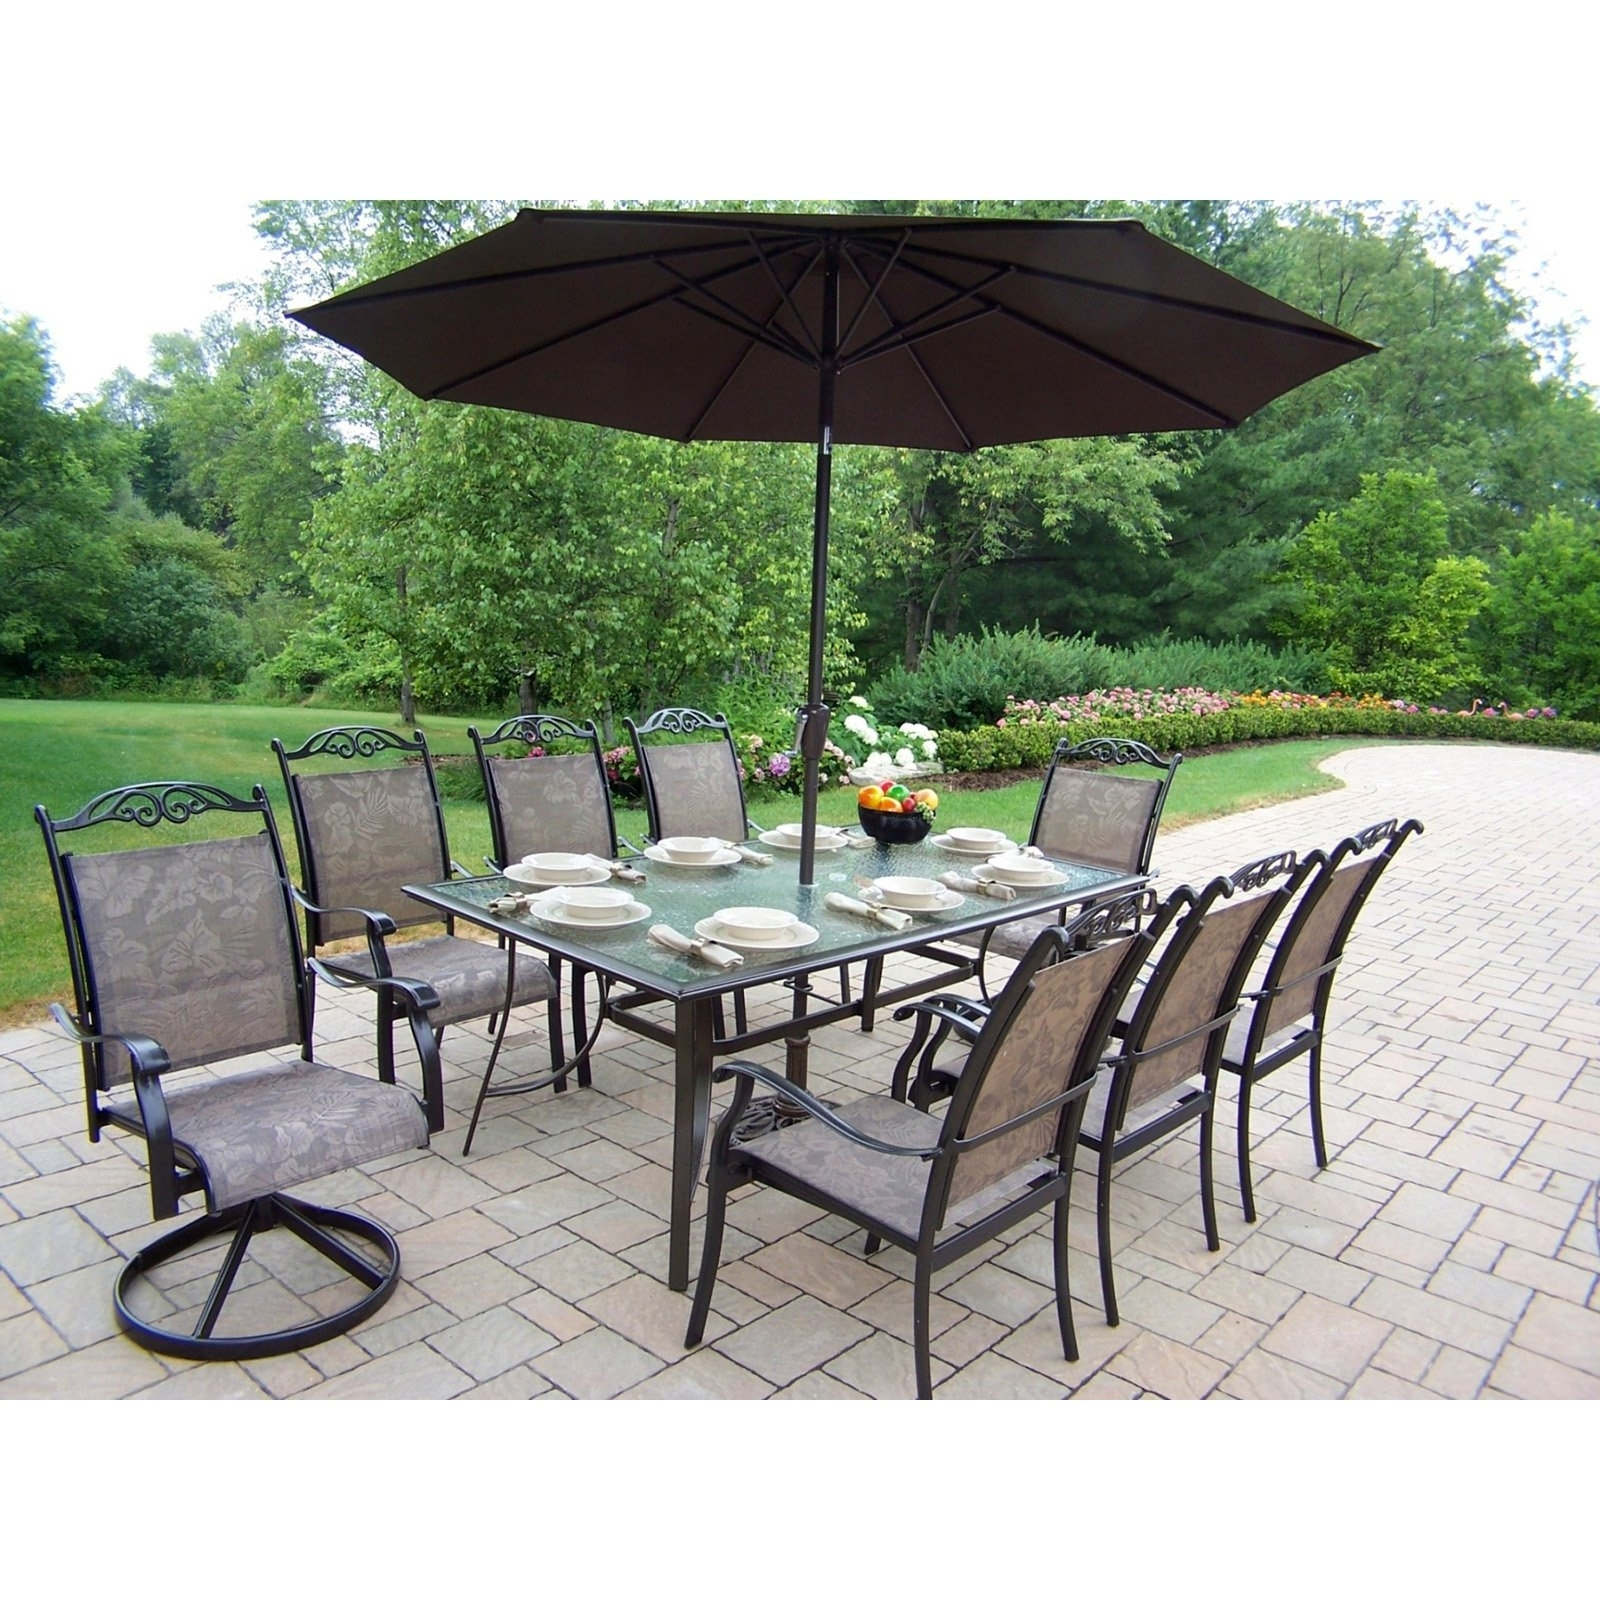 Oakland Living Cascade Patio Dining Set With Umbrella And Stand Inside Famous Patio Dining Sets With Umbrellas (View 10 of 20)